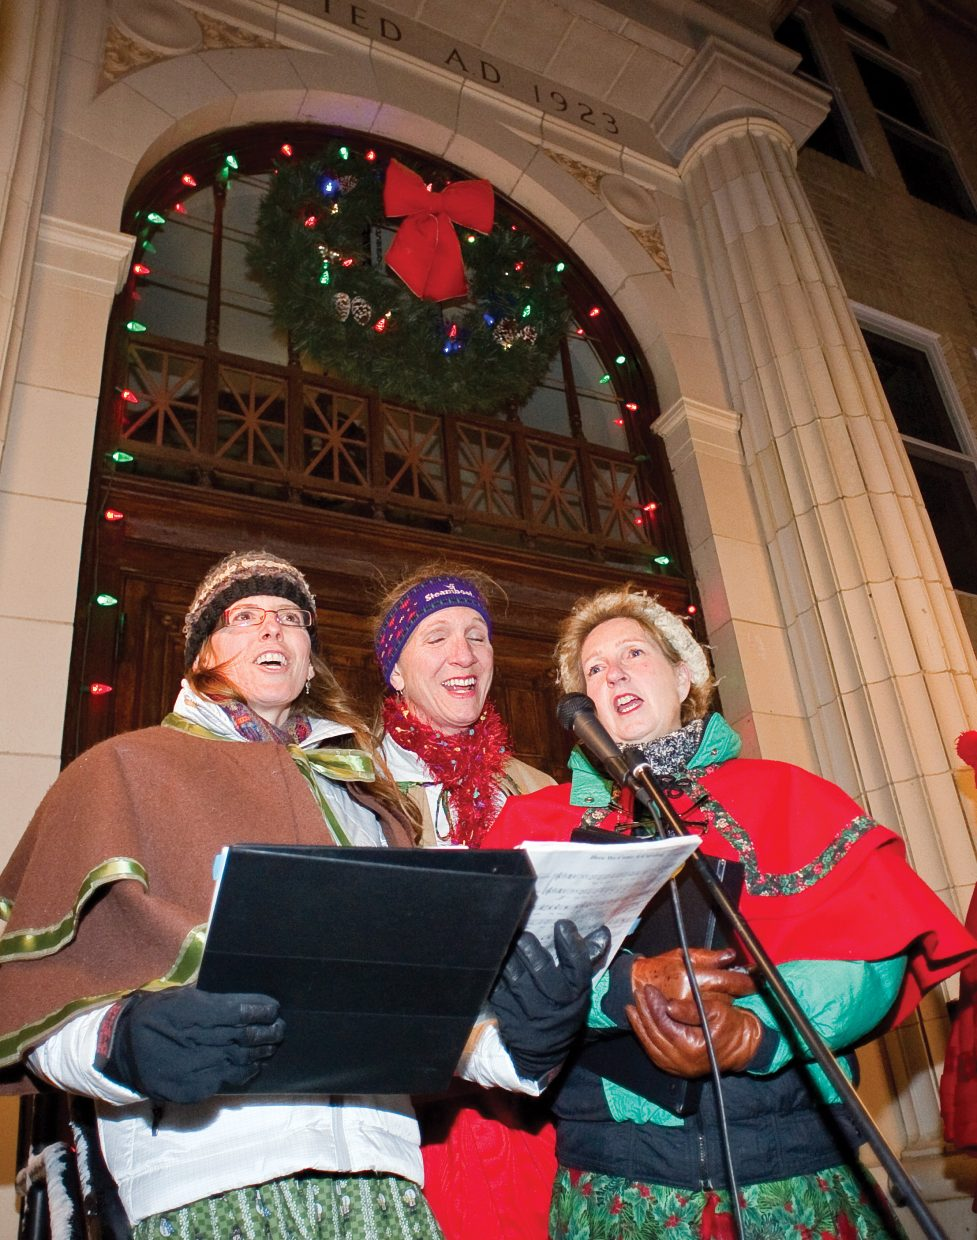 Chanel Caughey, Pam Pierce and Laura Frey perform Christmas carols Friday night on the Routt County Courthouse steps as part of the caroling group Bells of the Boat. The carolers were part of the seventh annual Light Up the Night community tree lighting ceremony. The night included the tree lighting, singing and even a visit from Santa Claus.